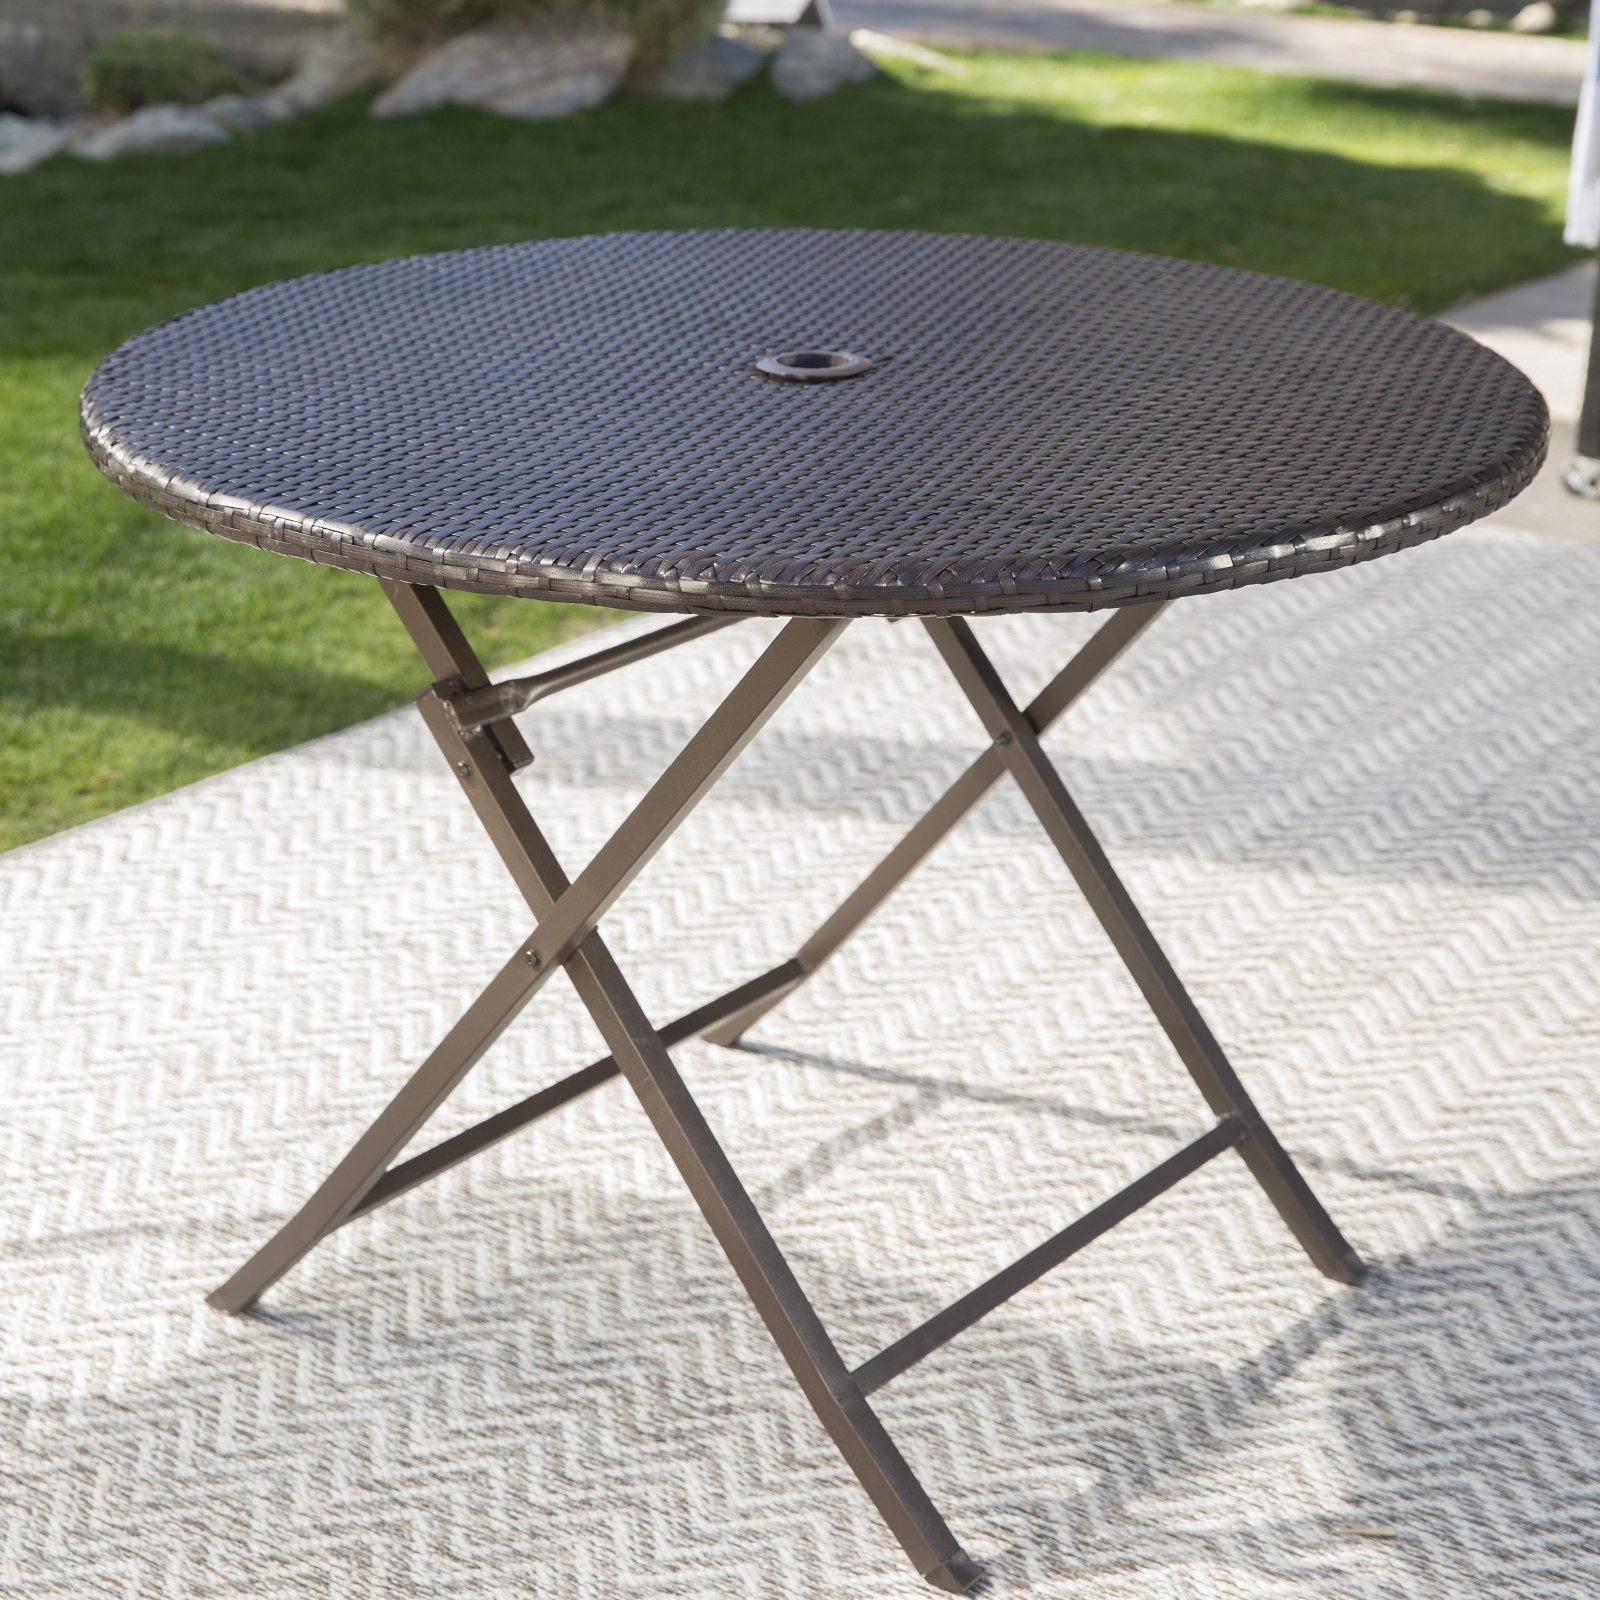 Coral Coast Berea Outdoor Wicker Folding Cafe Table by